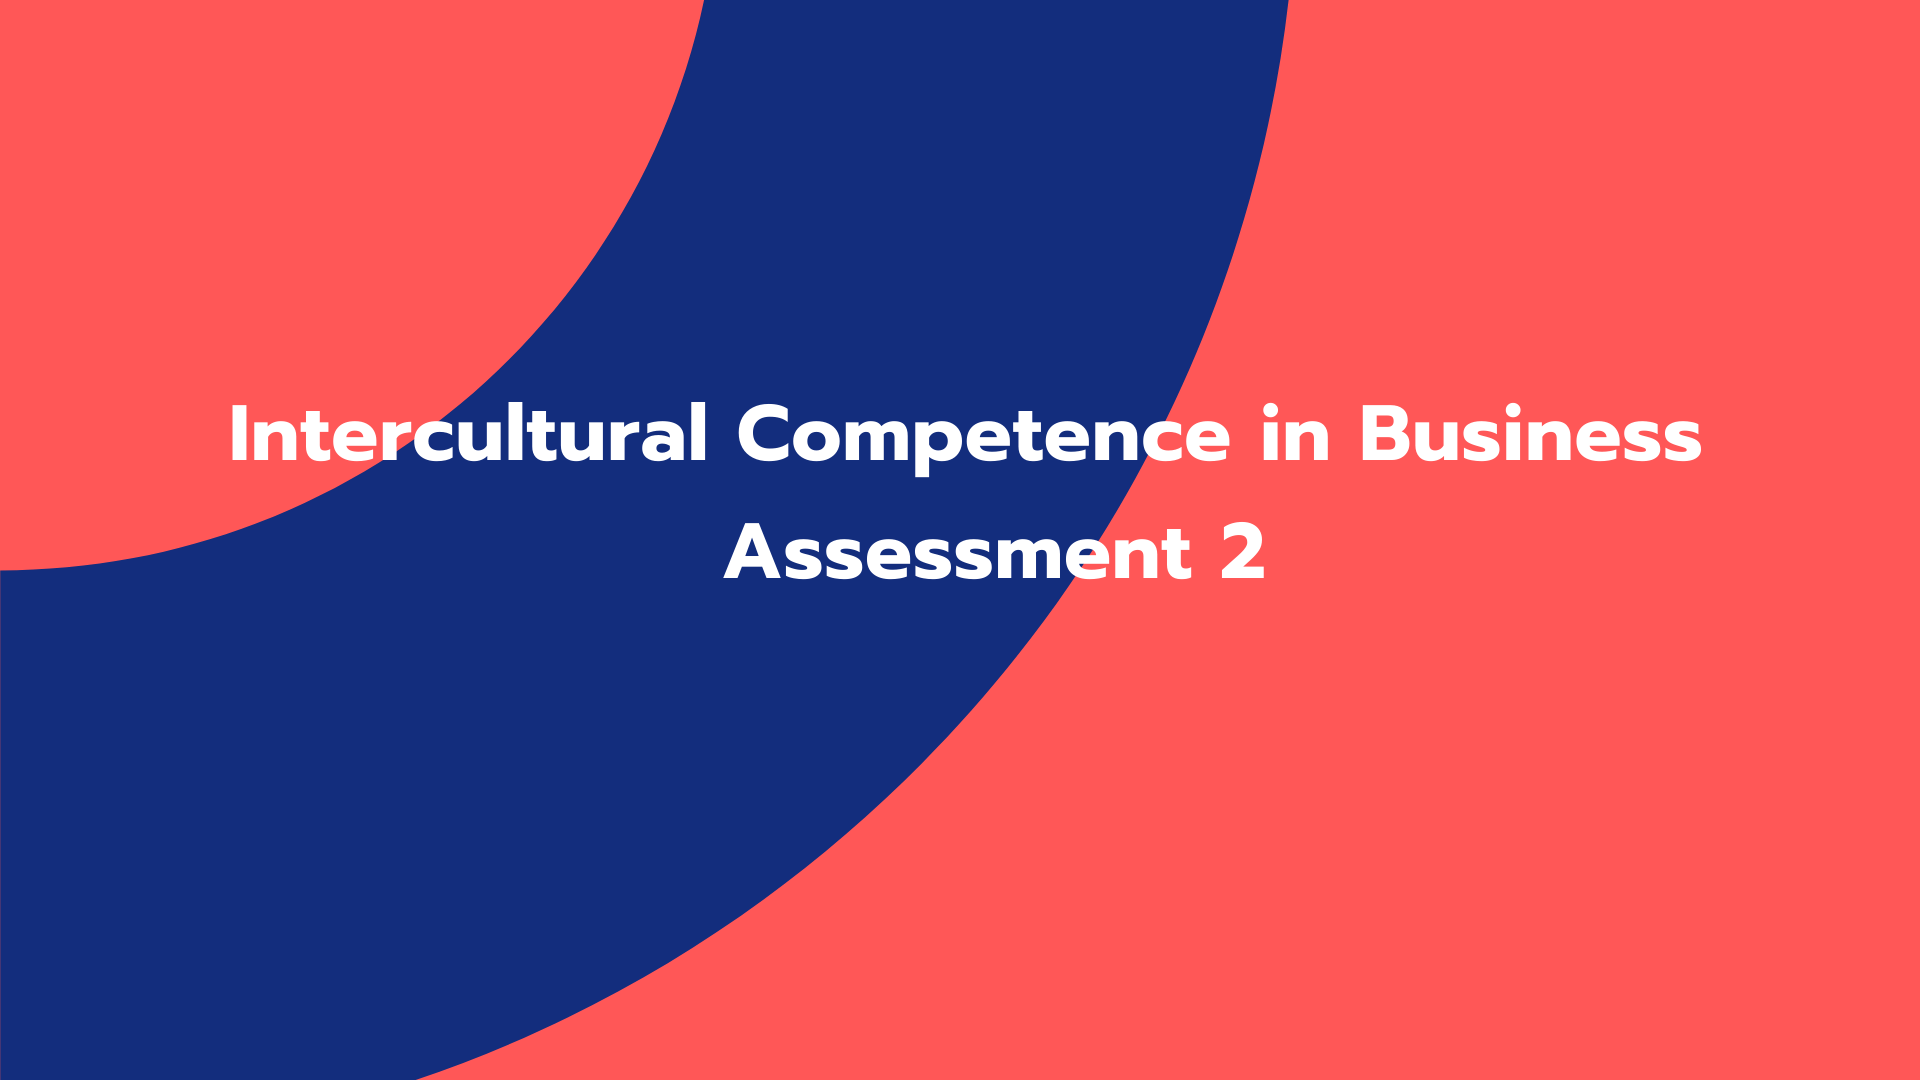 Intercultural Competence in Business Assessment 2